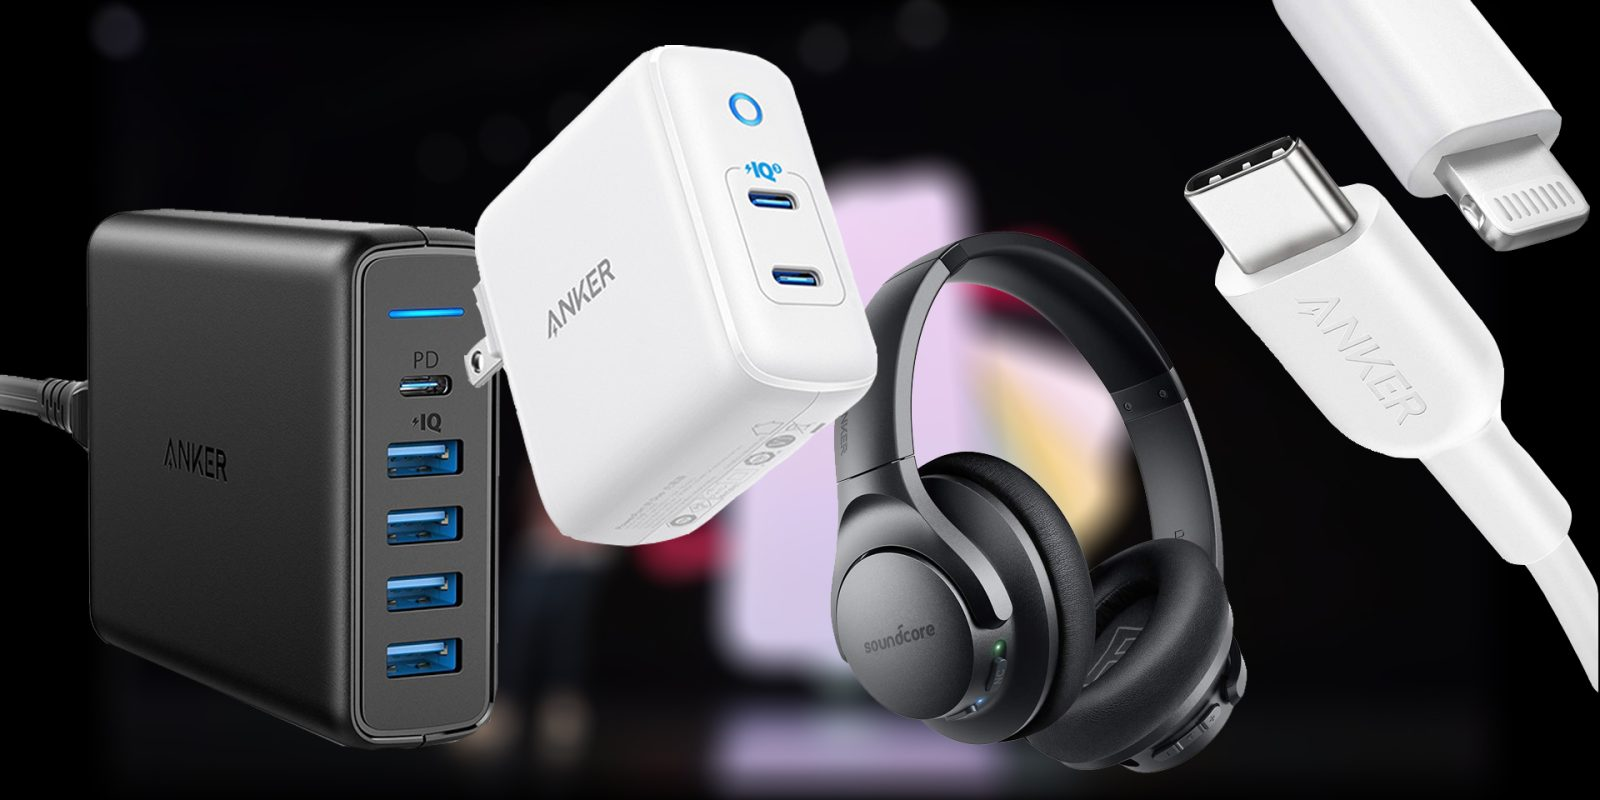 9to5Toys - New Gear, reviews and deals